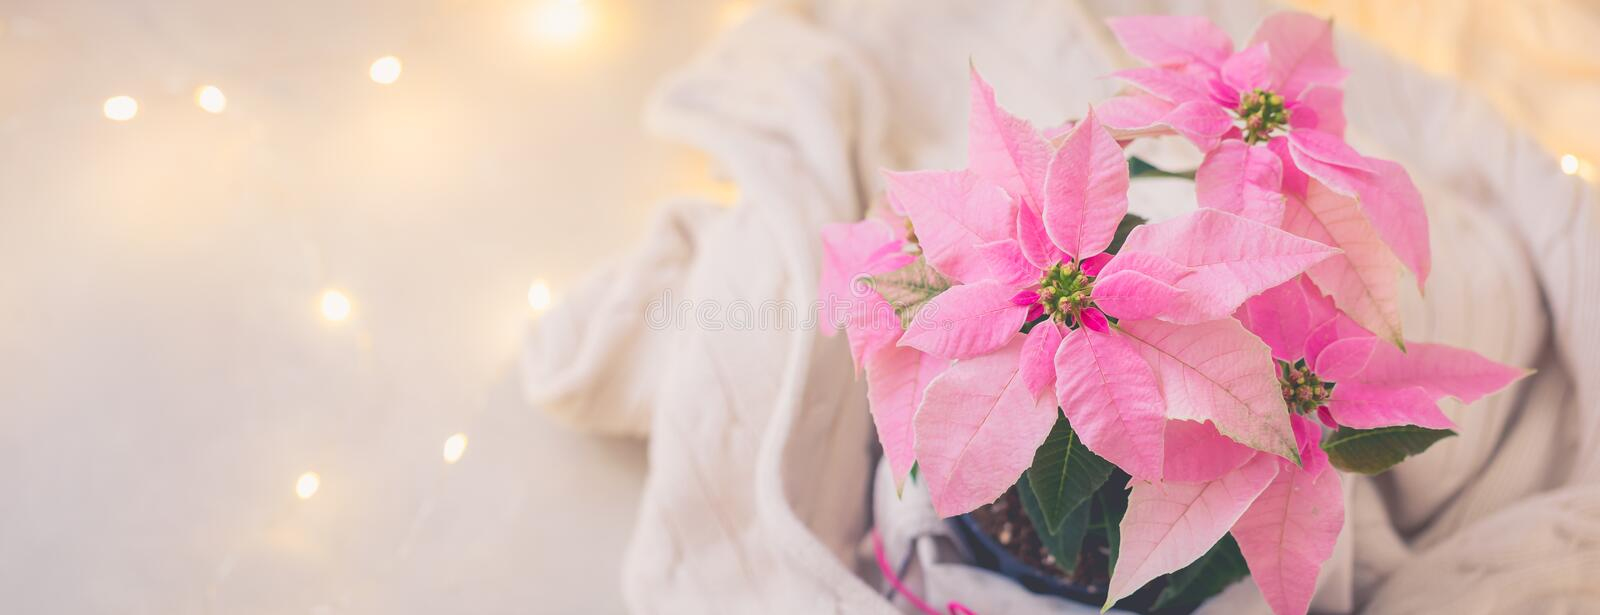 Christmas pink poinsettia potted with beige knitted pullover with sparkling garland. Toned stock photo